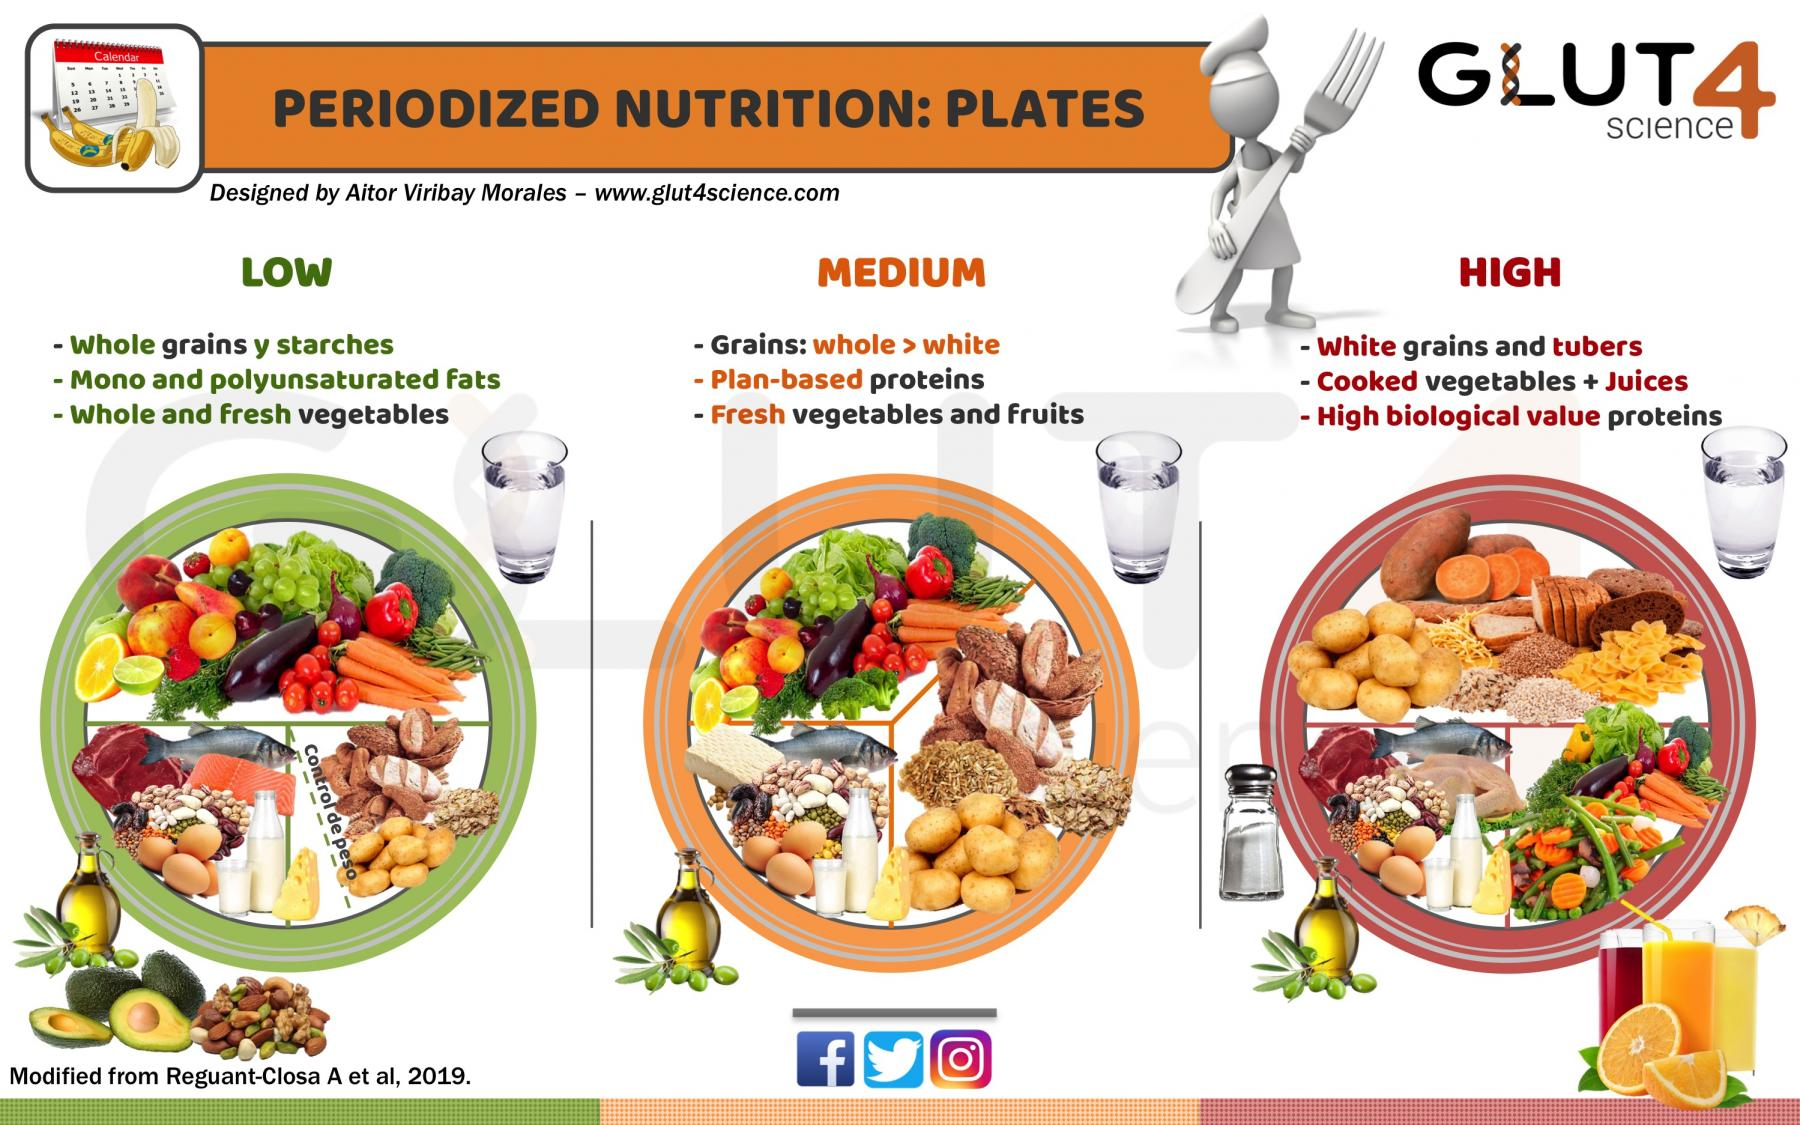 Periodized Nutrition: Plates